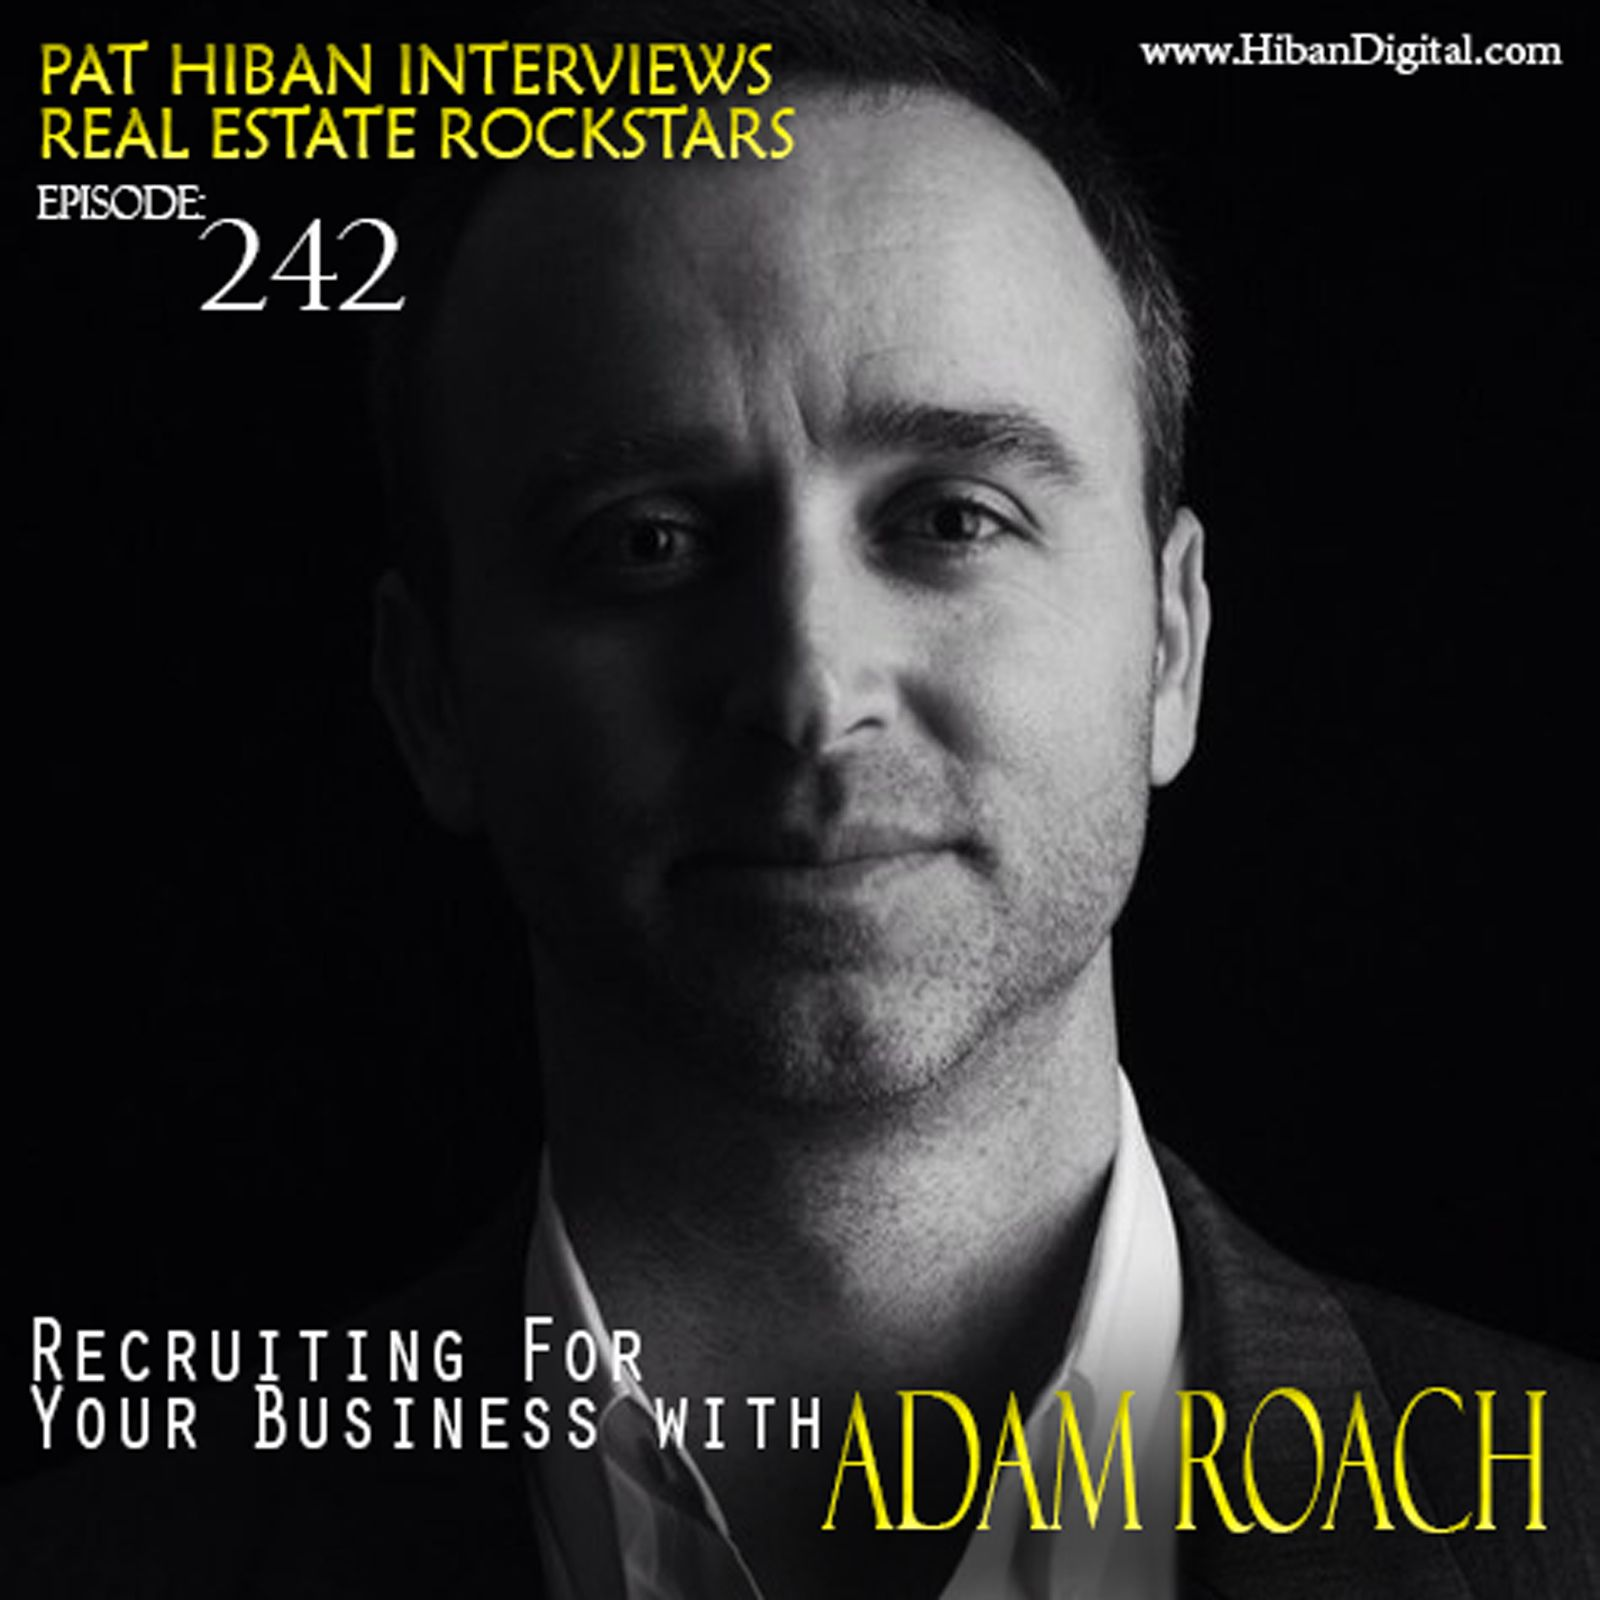 Adam Roach founded and created the first and only lead generation/communication system specifically for Keller Williams' Team Leaders, called recruiting | bridge. Adam is a well-liked team leader with extensive real-life experience in the real estate industry...  #realestate #podcast #pathiban #hibandigital #hibangroup #HIBAN #realestatesales #realestateagent #realestateagents #selling #sales #sell #salespeople #salesperson #adamroach